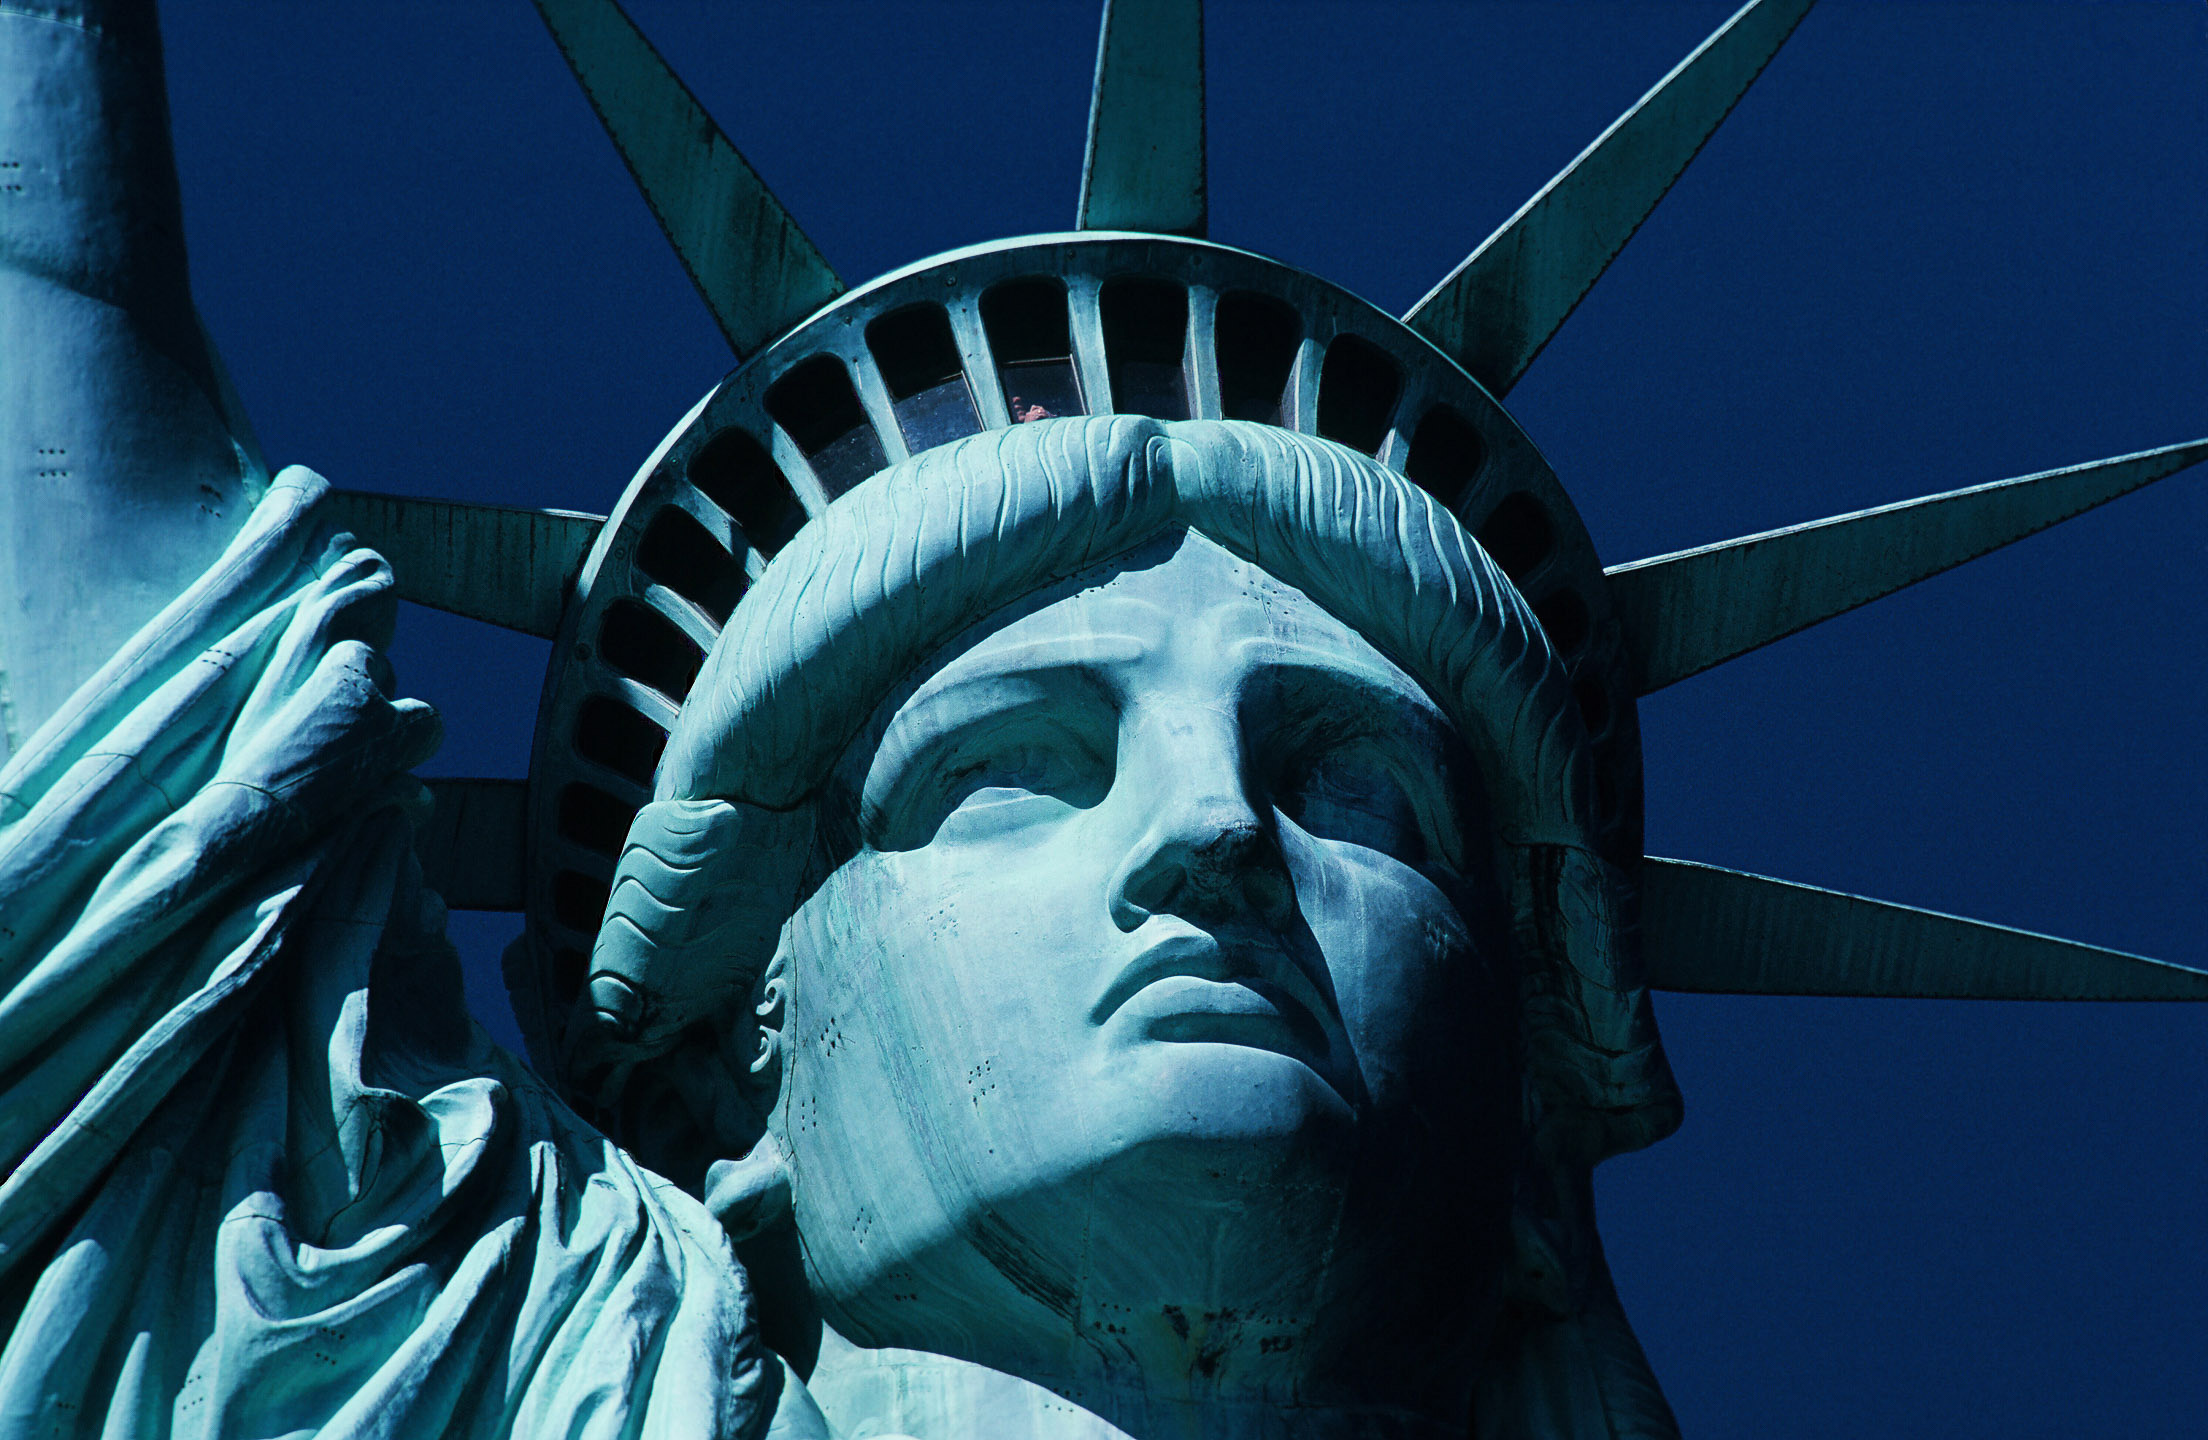 StatueofLibertyClose-up-2-2